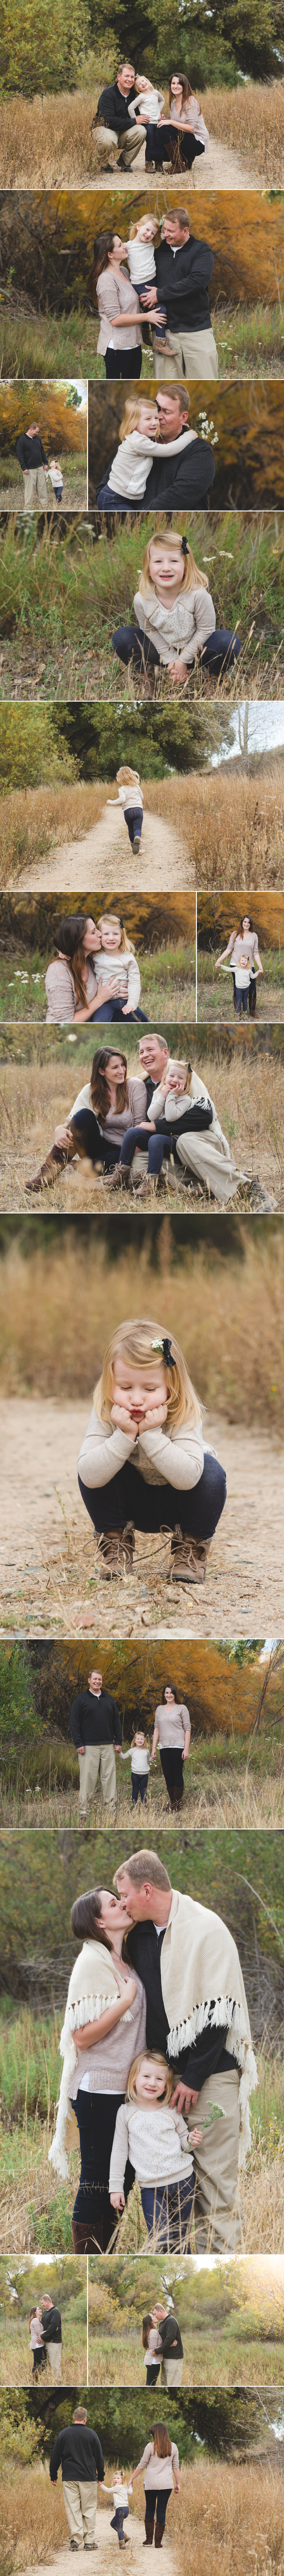 Family photography by Jennifer Rice Photography